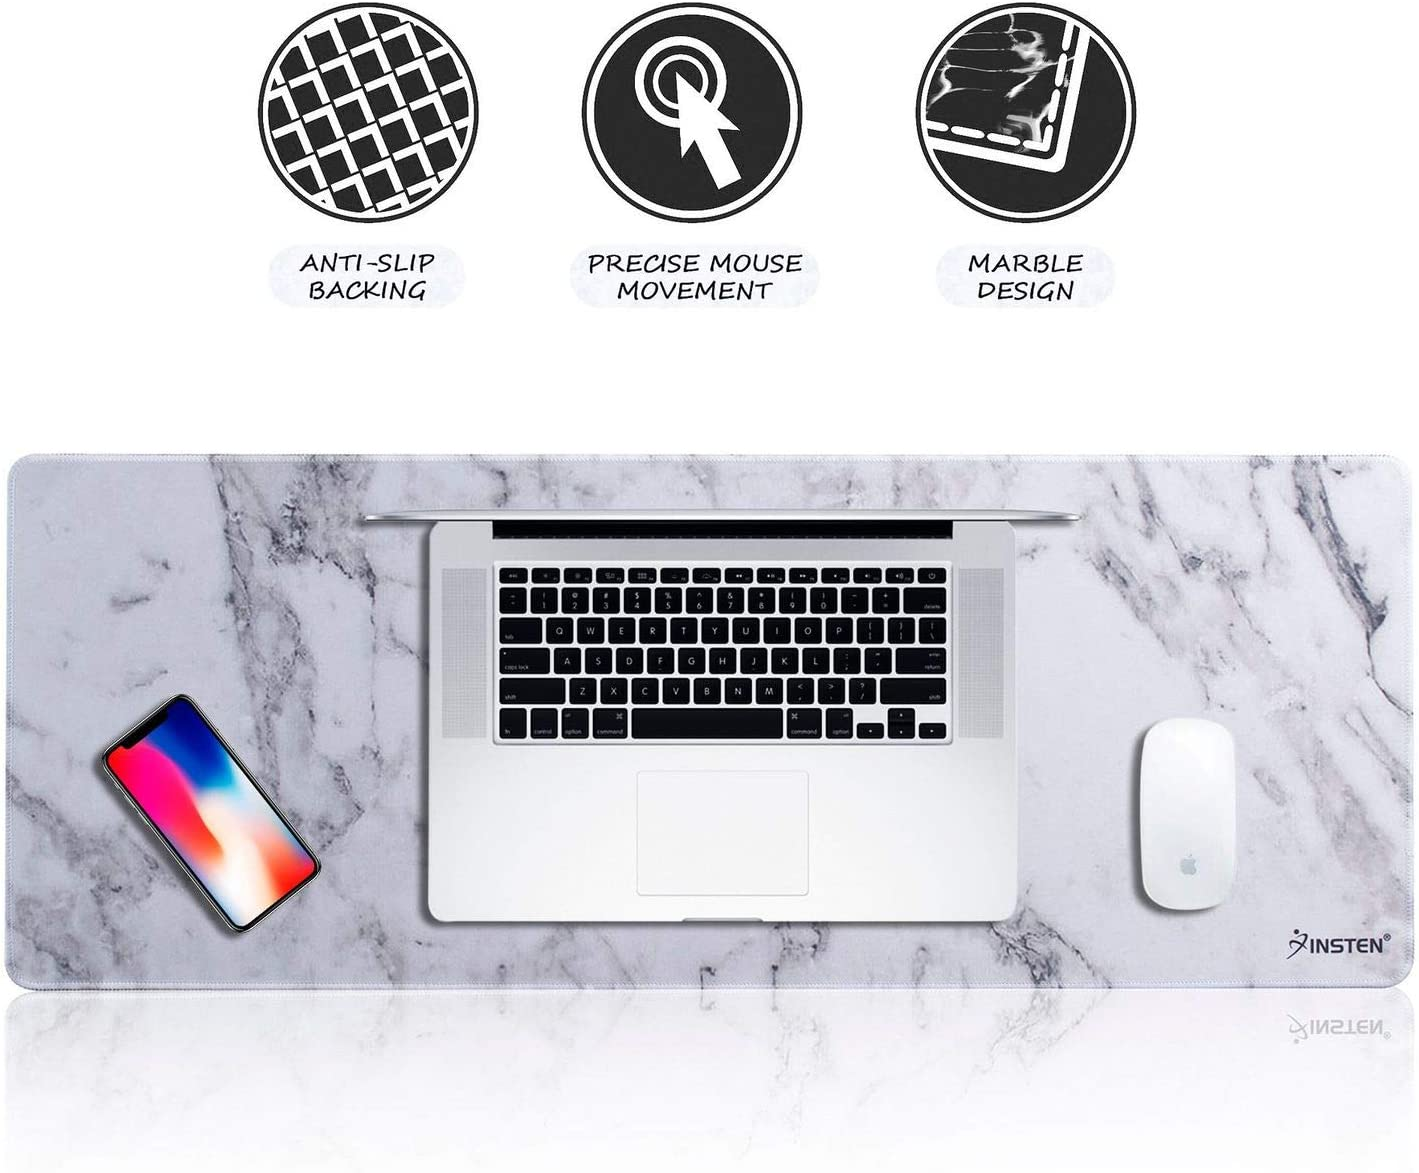 "INSTEN Extra Large Mouse Pad, Marble Extended Computer Mouse Pad XL XXL for Desktop, with Waterproof Coating, Non-Slip Base, Silky Smooth Surface, Durable Stitched Edges - 31.5"" X 12"", White Marble"